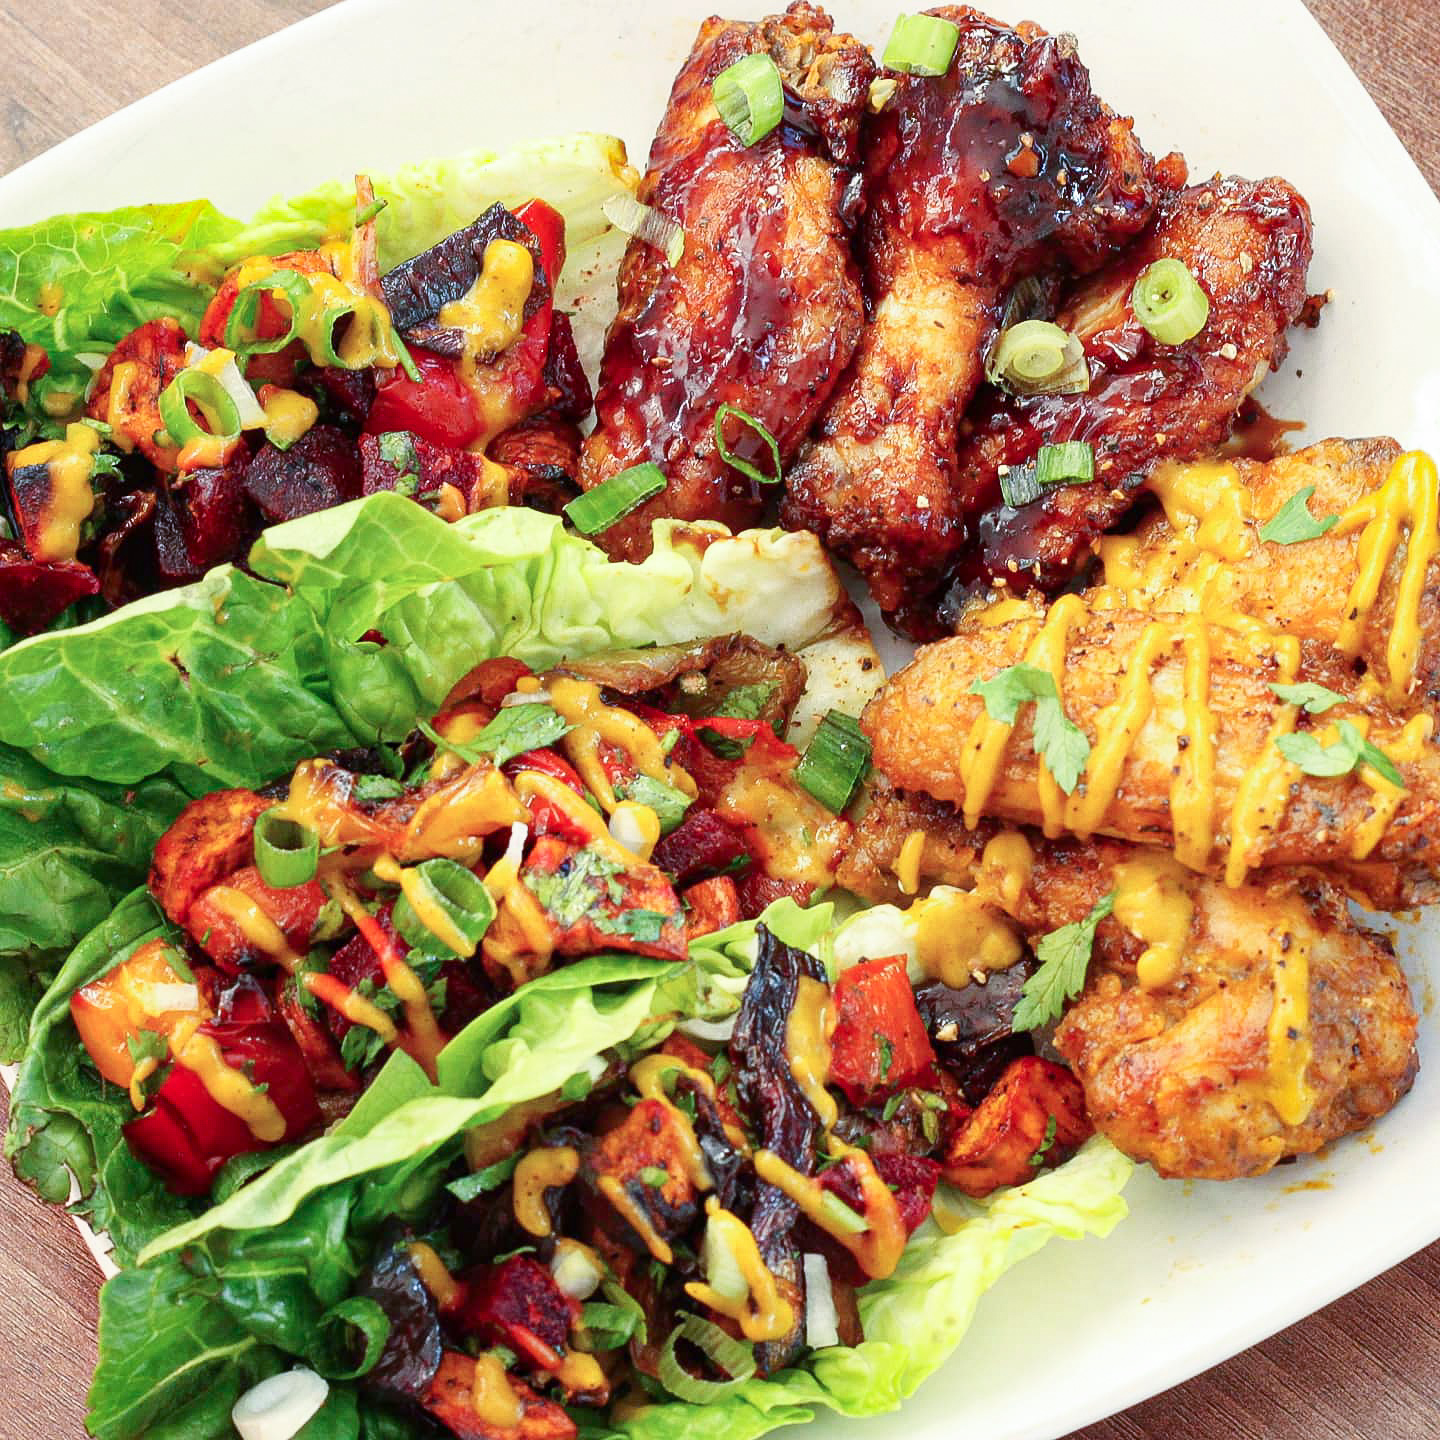 Roasted Vegetable lettuce wraps with mango sauce & Baked wings.